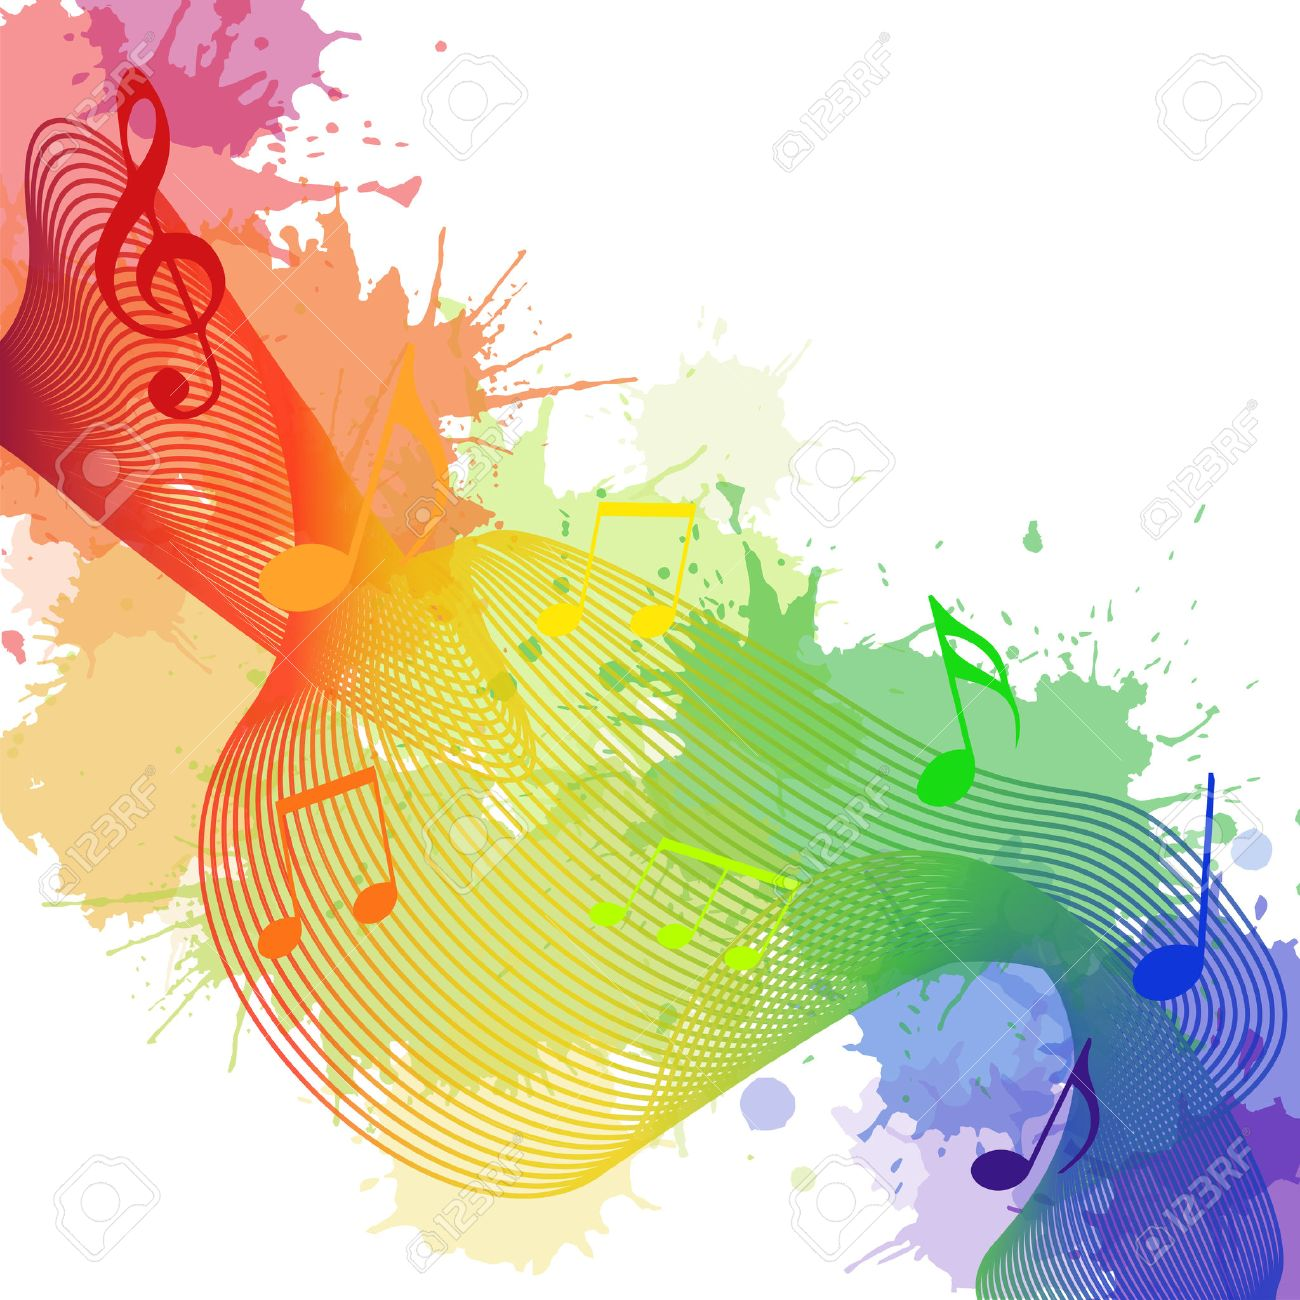 Illustration with rainbow musical notes, waves and watercolor splashes for your creativity - 51565744